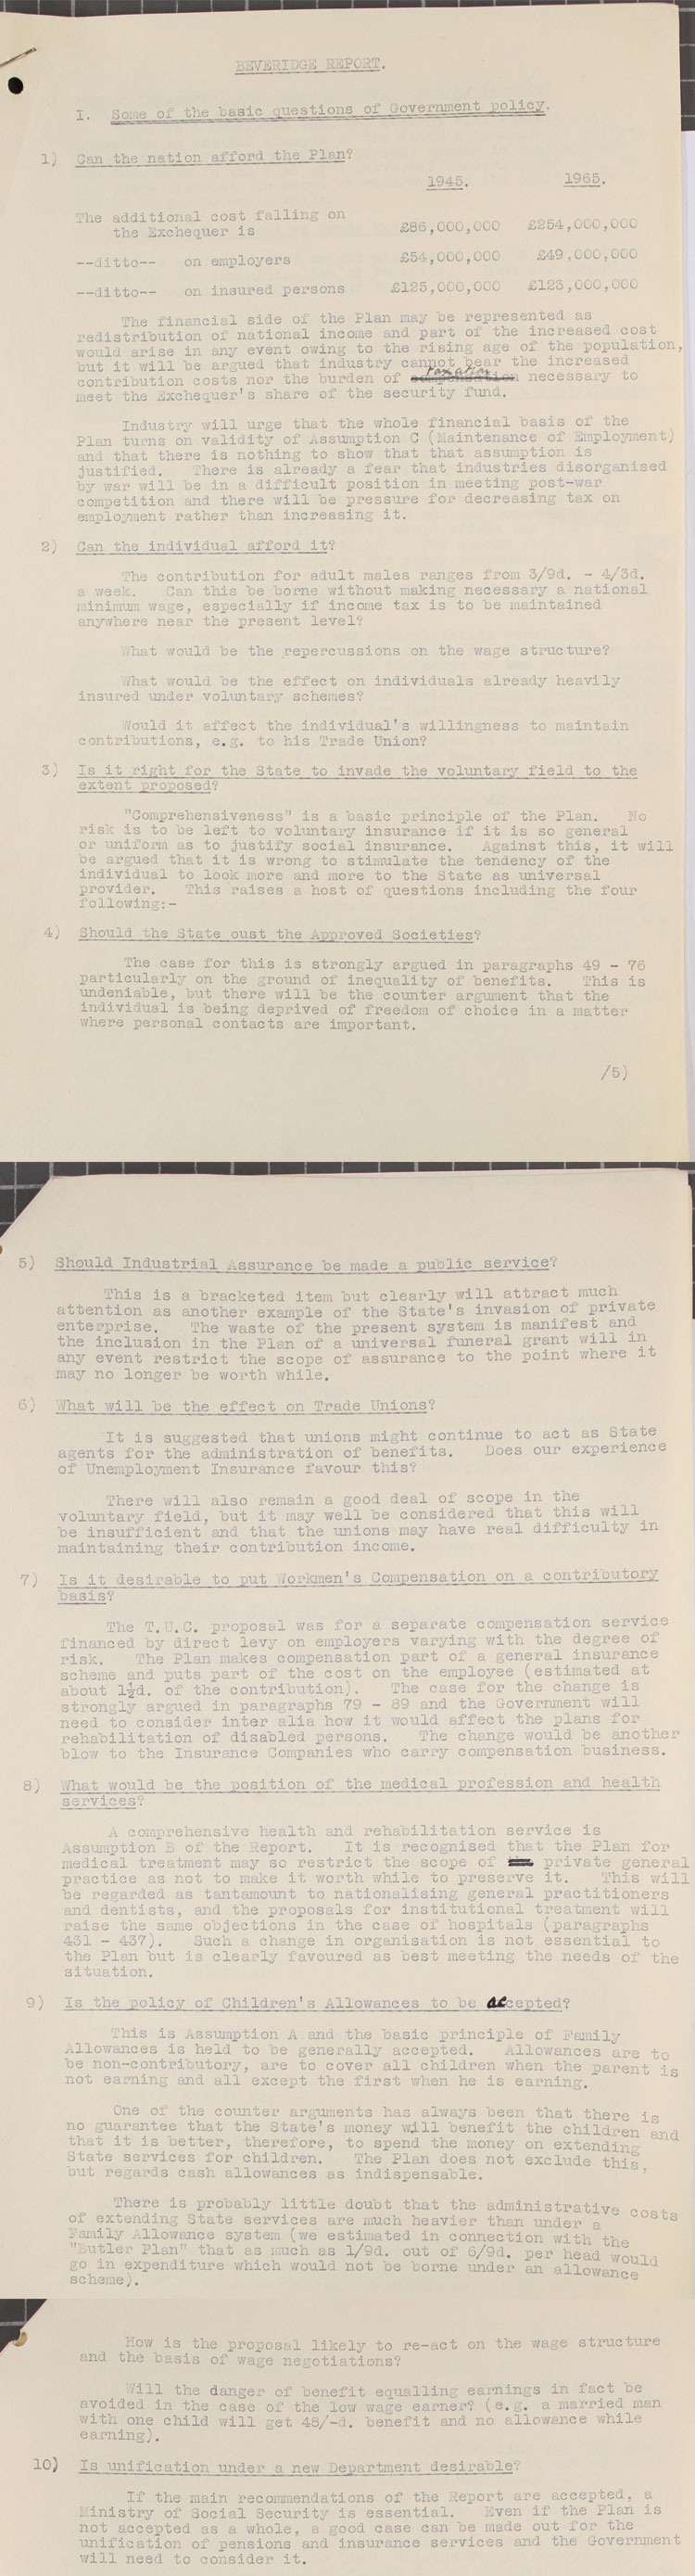 Questions drawn up arising from the Beveridge Report to be discussed within the Ministry of Labour, 2nd December, 1942 (LAB 12/6)